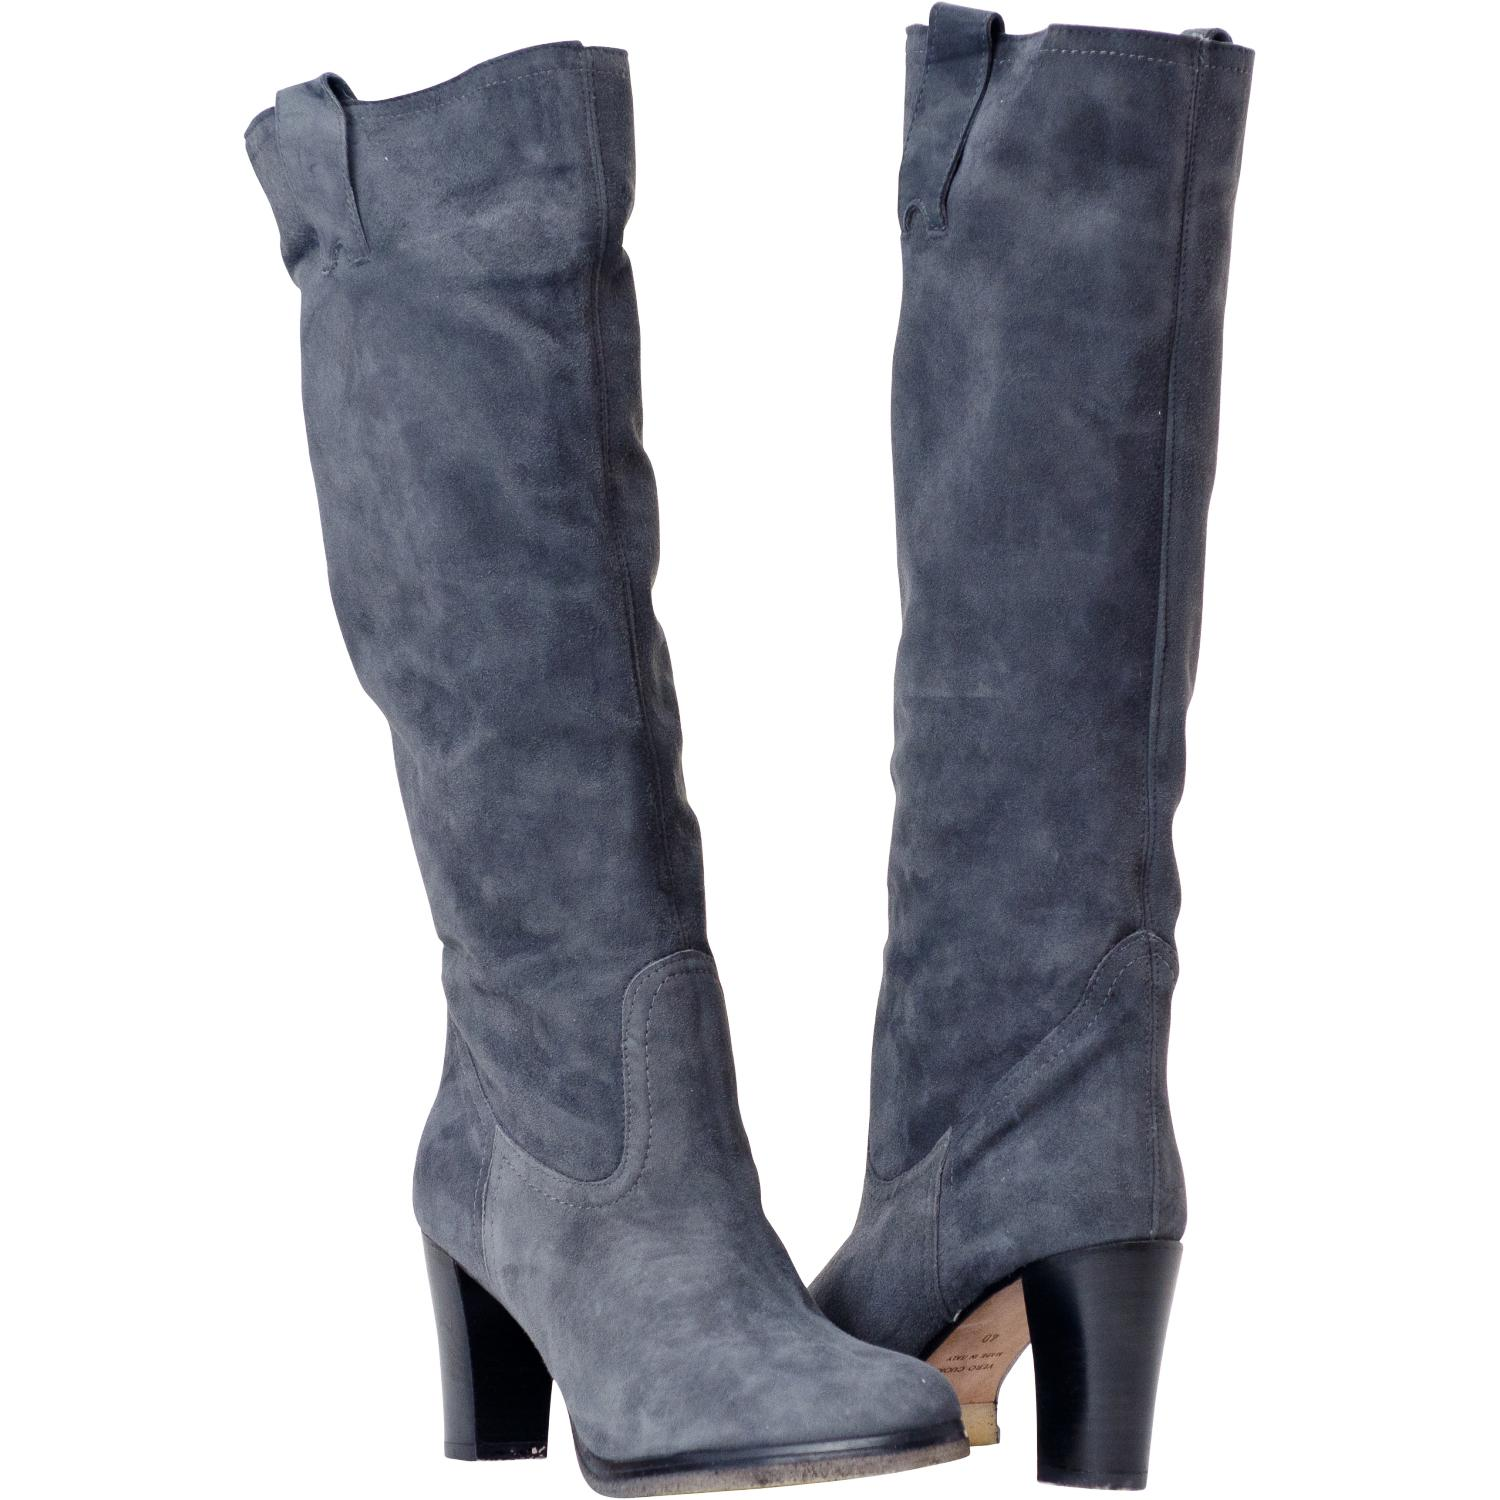 grey suede boots june grey suede tall boots TFWYBQZ